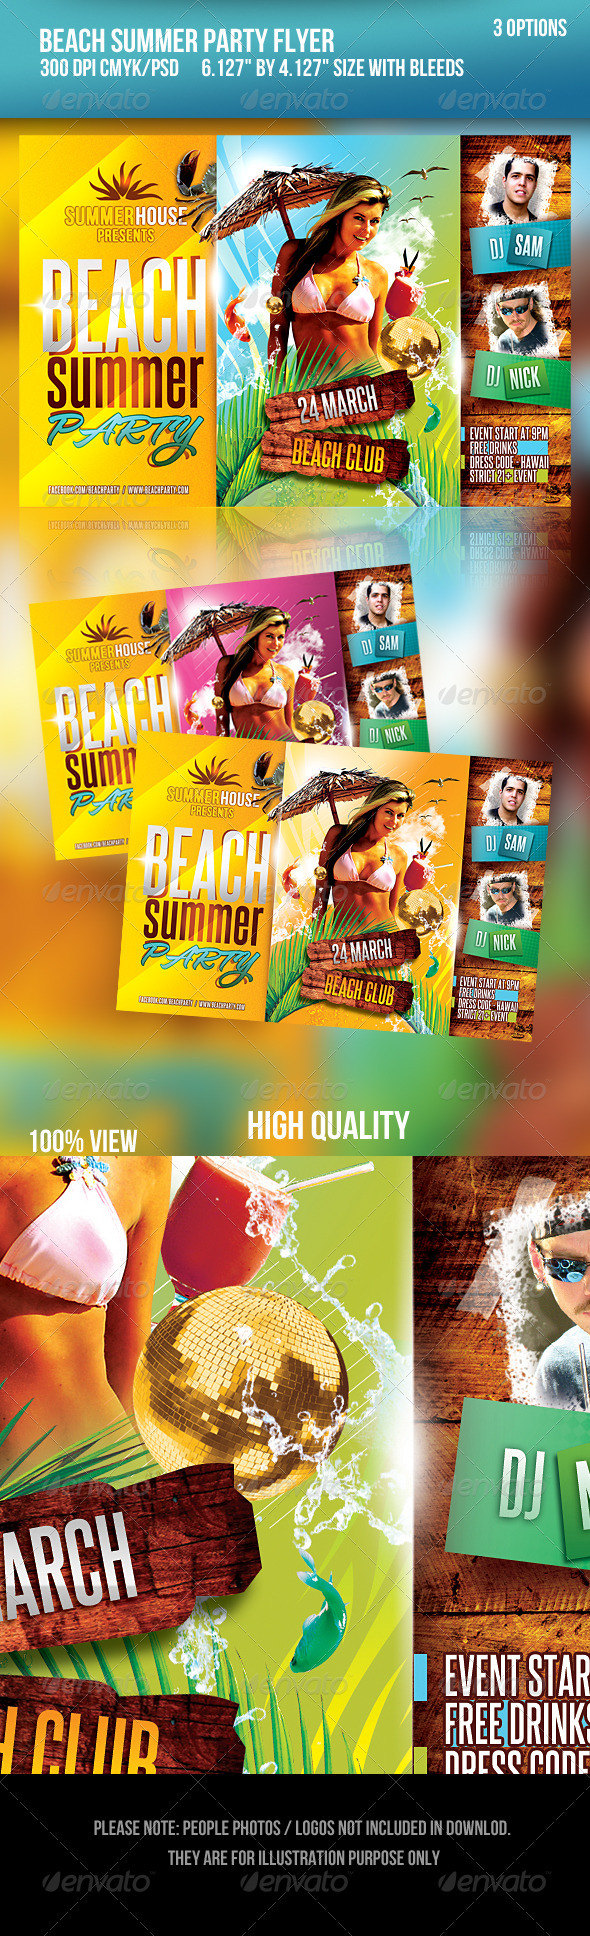 Beach Summer Party Flyer - Flyers Print Templates